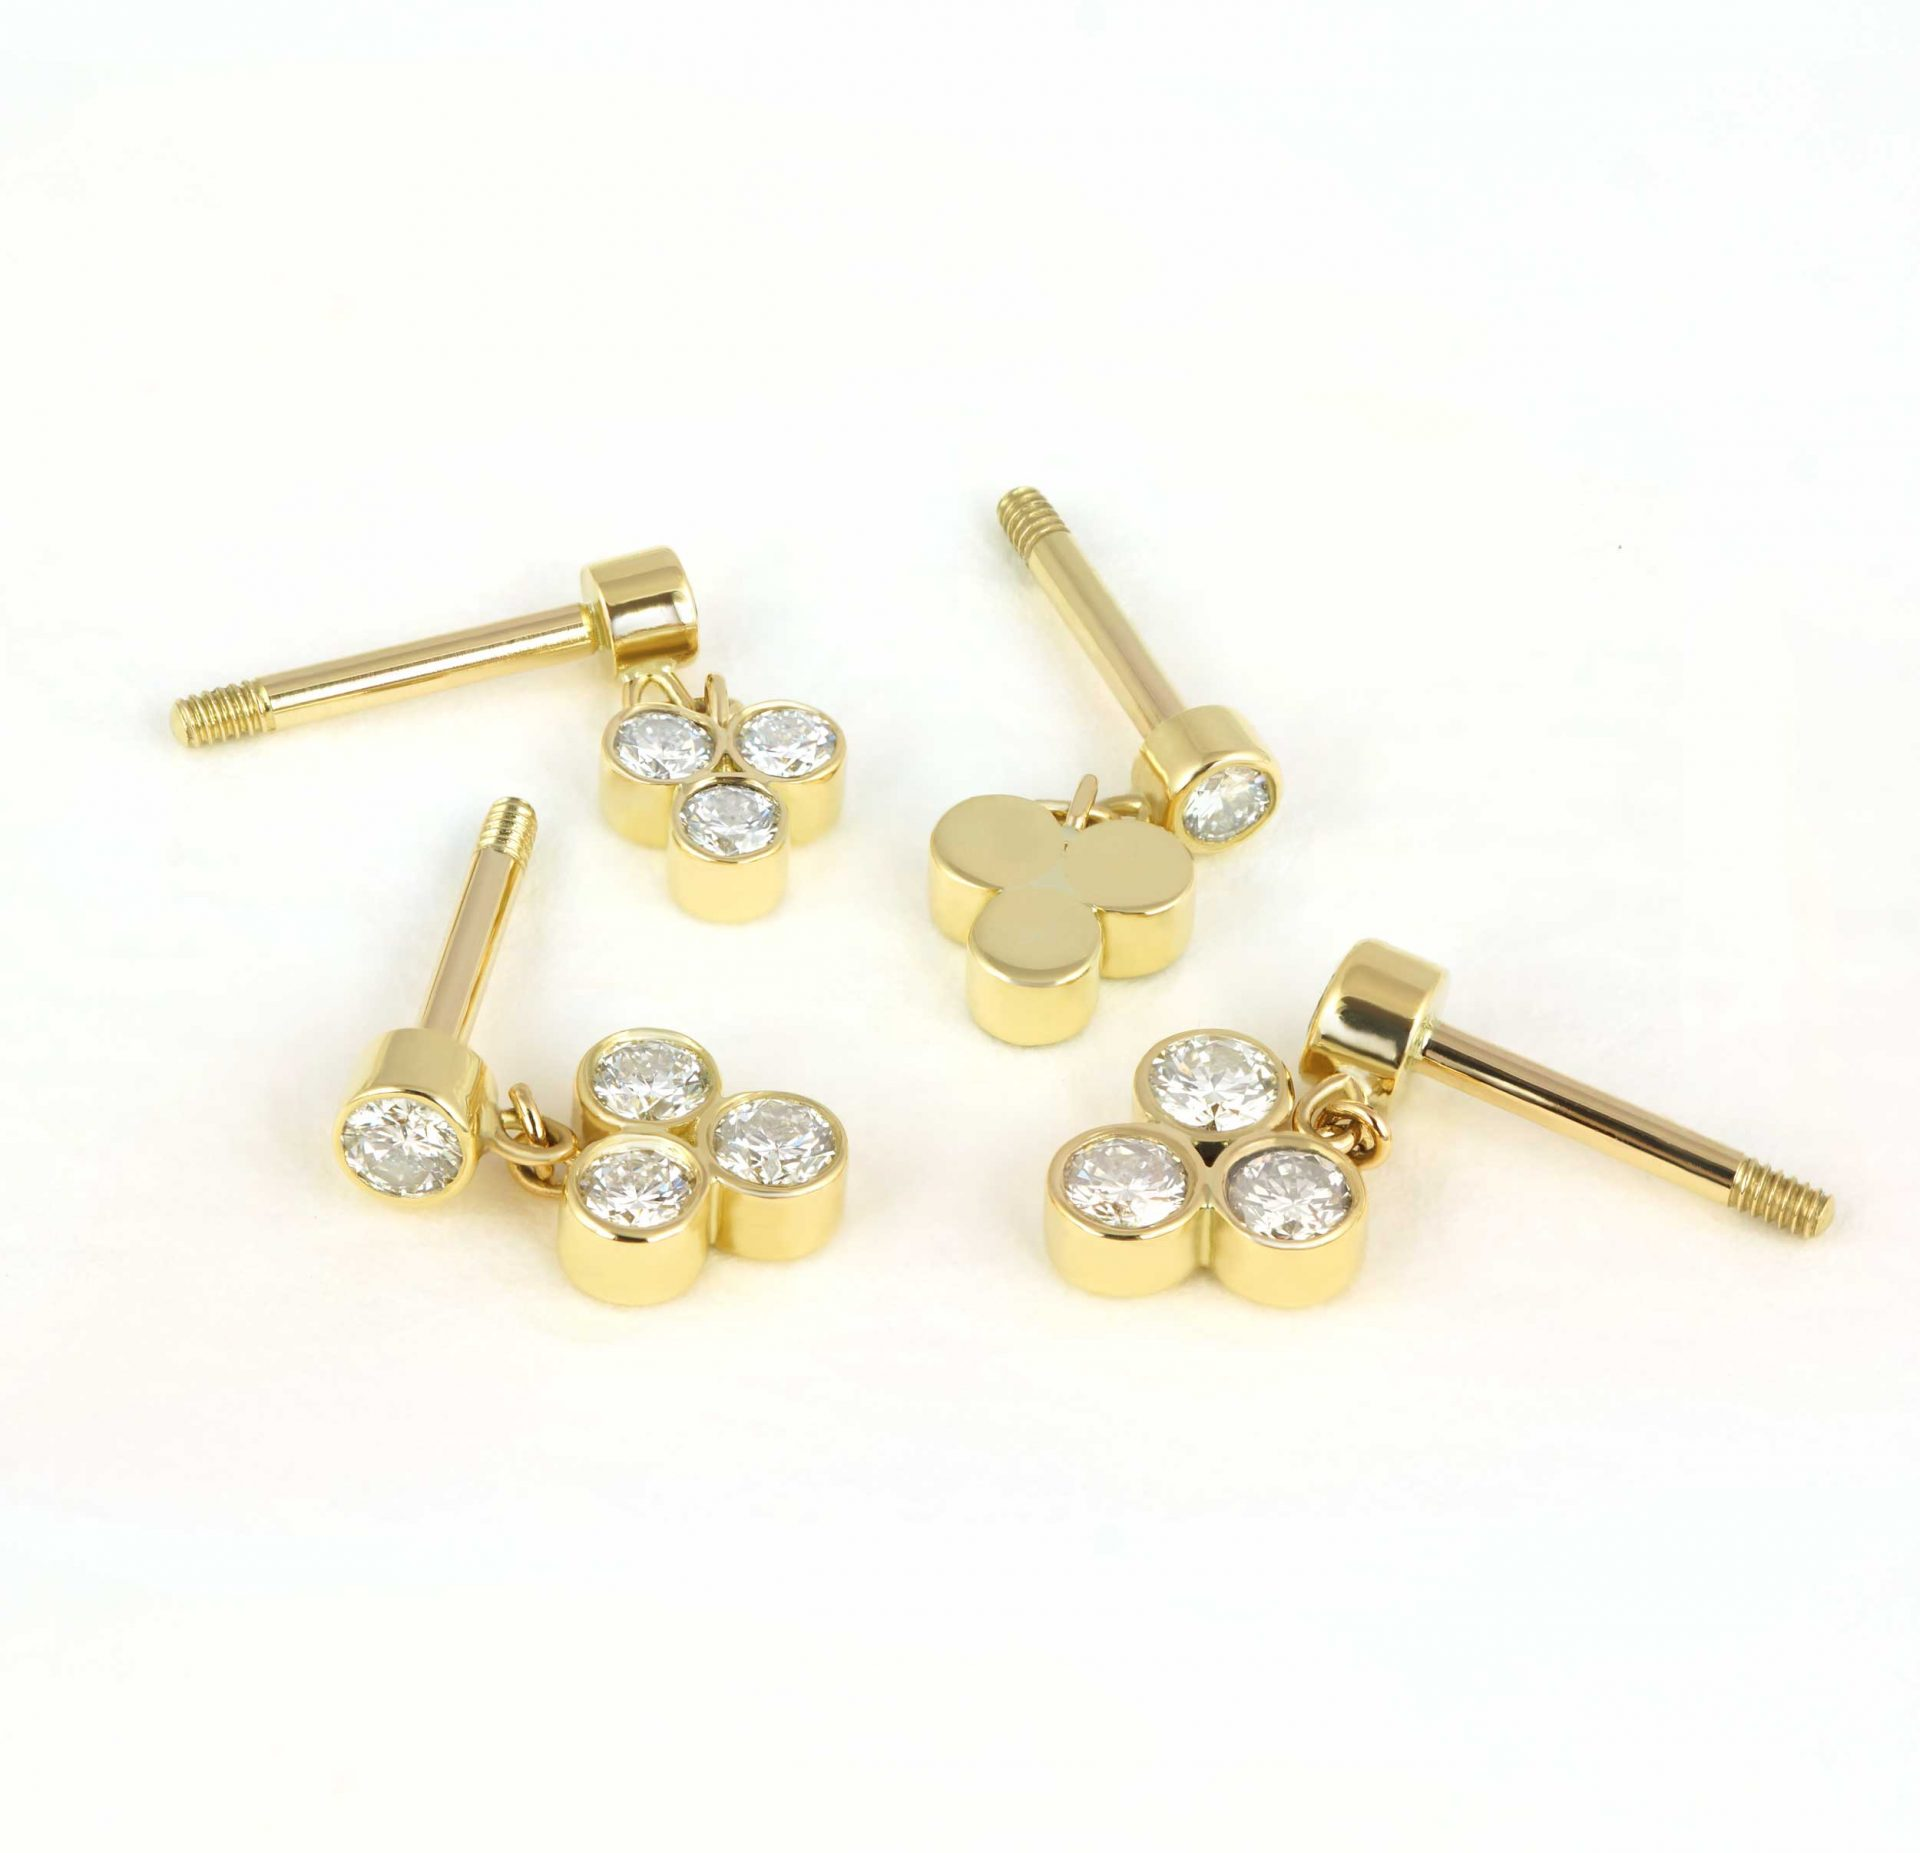 Trendy, London-based jewellery brand Lena Cohen Fine Piercing Jewellery offering a range of dainty and on-trend studs and hoops in only 18k gold and high quality natural gemstones